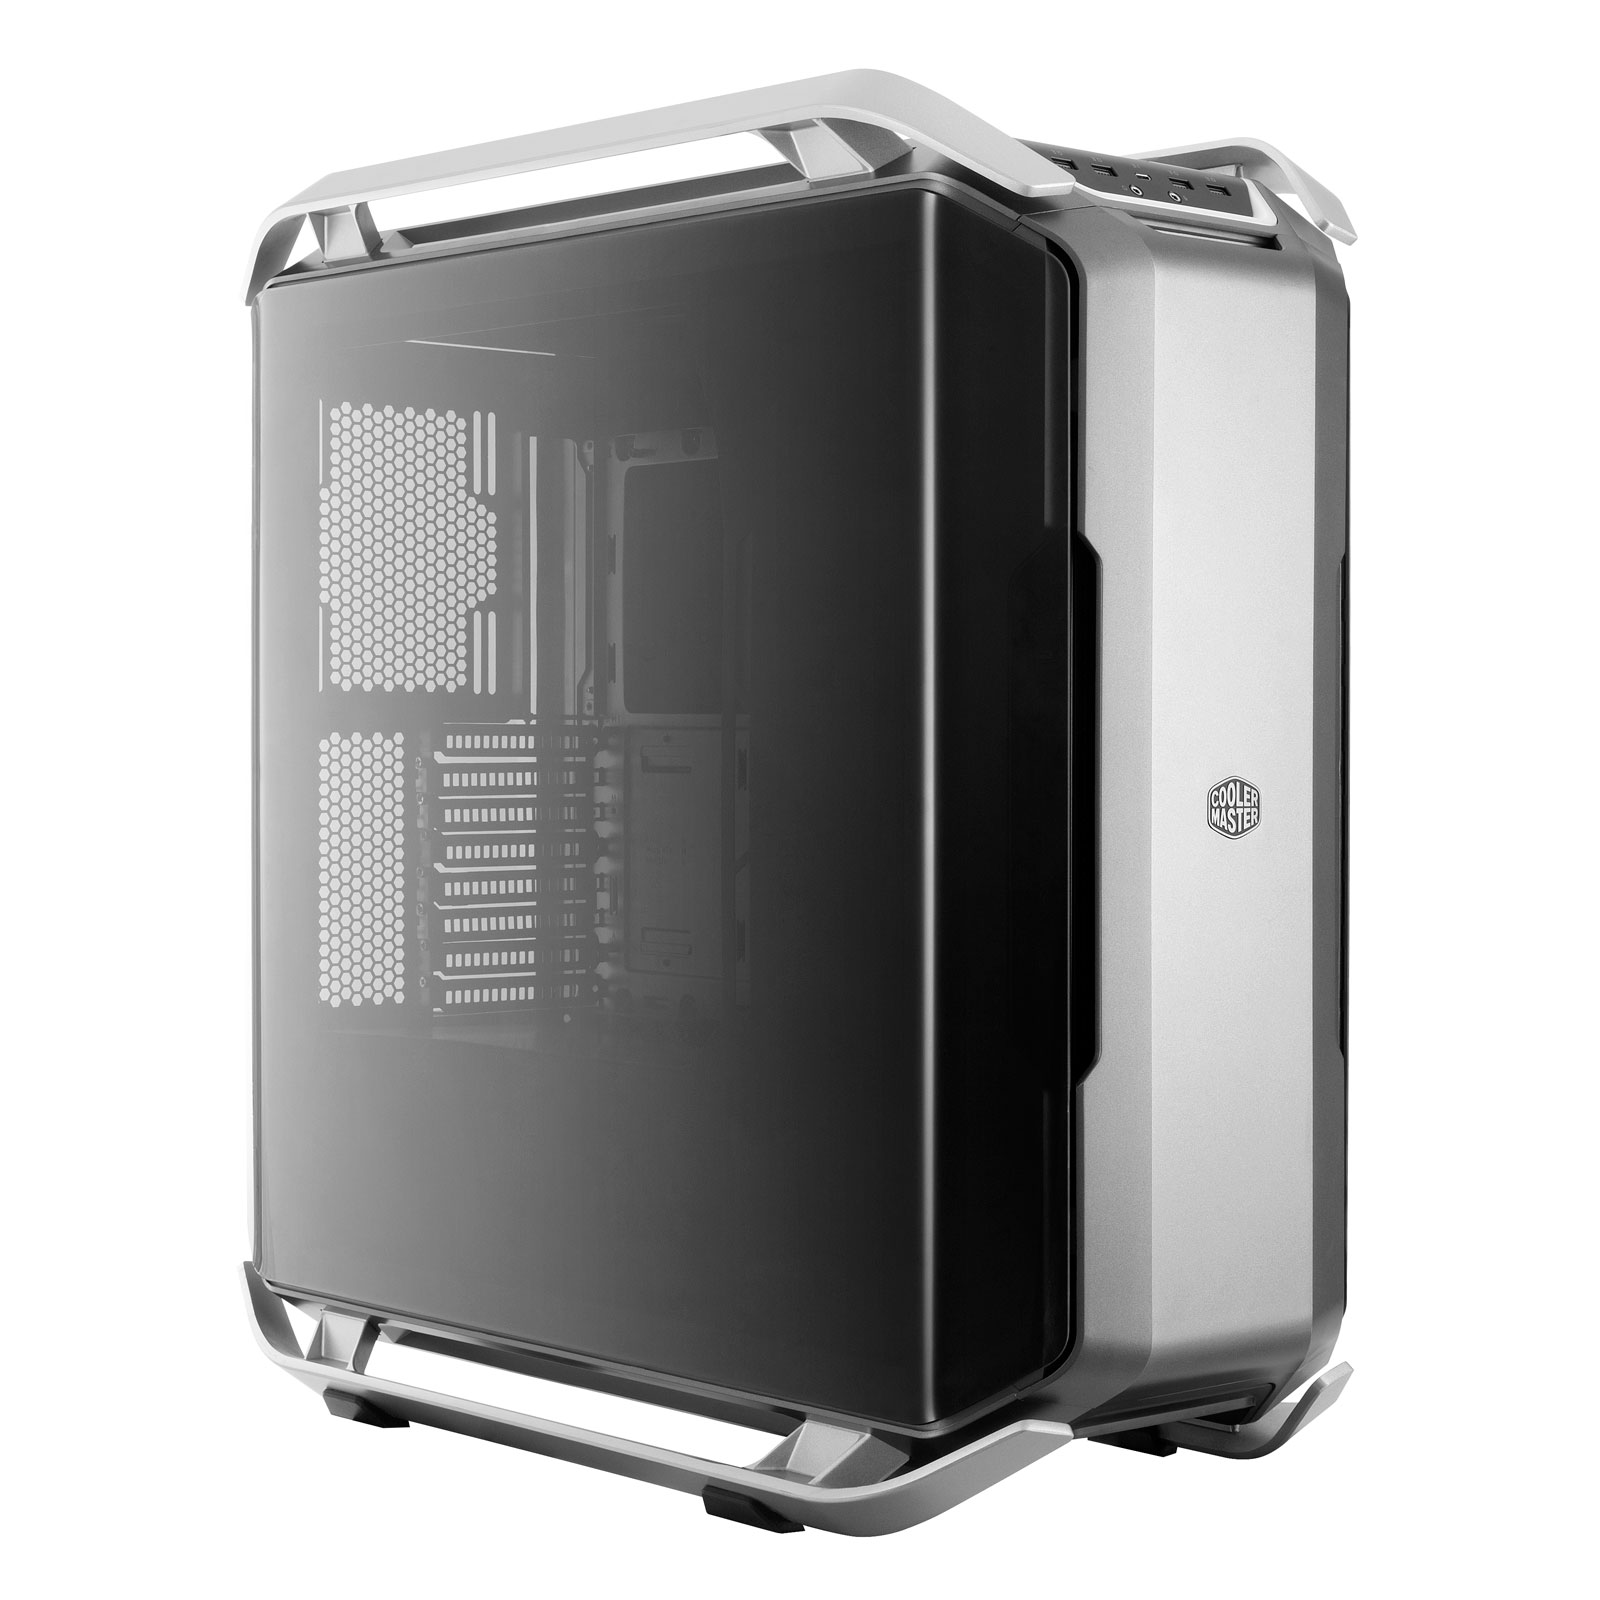 cooler master cosmos c700p bo tier pc cooler master ltd sur. Black Bedroom Furniture Sets. Home Design Ideas